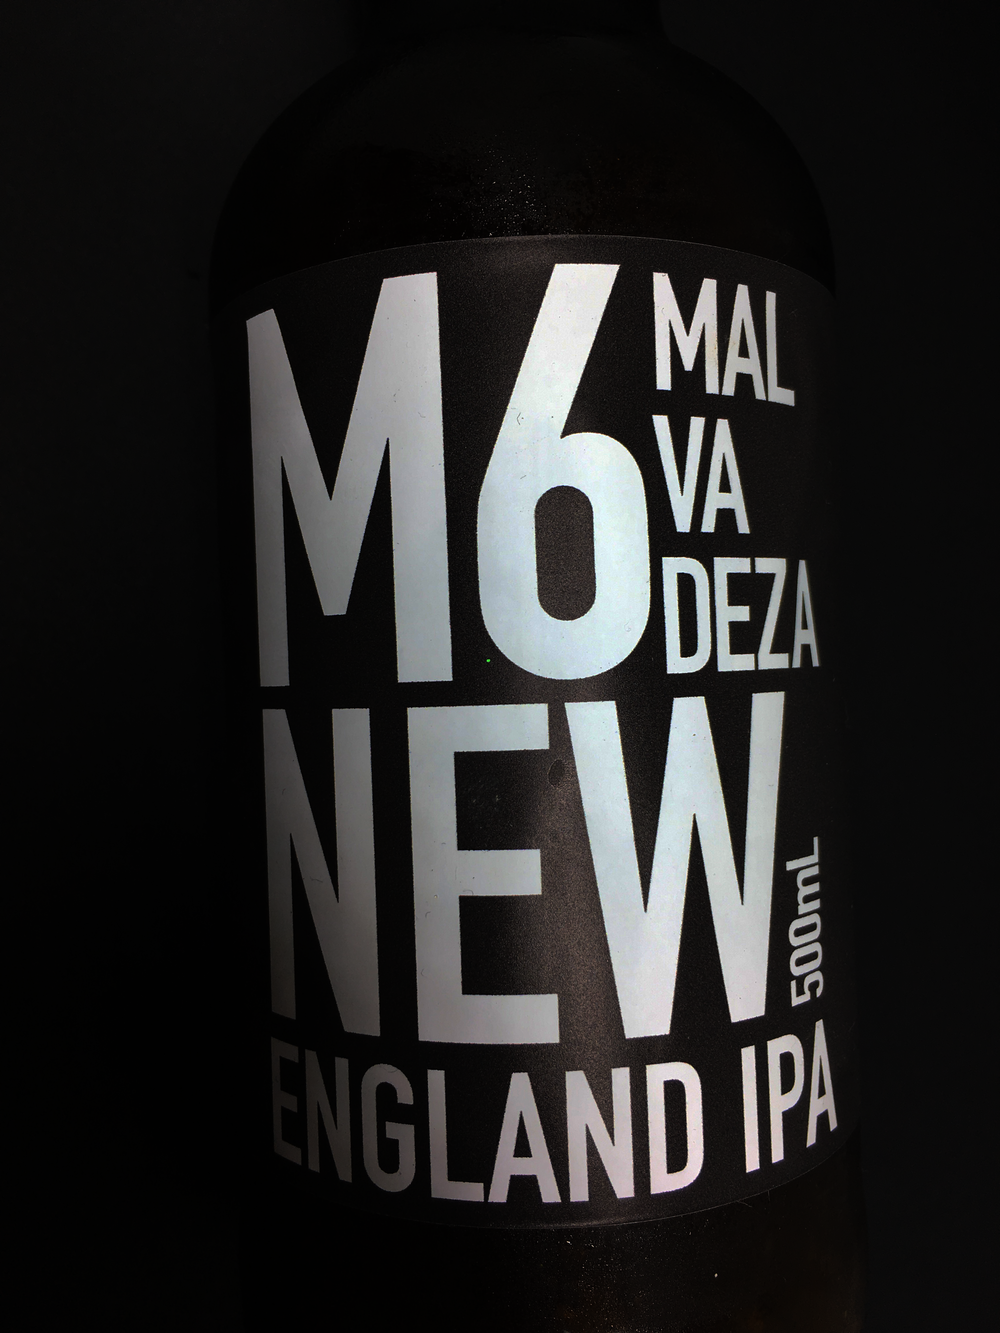 Malvadeza M6 - The sixth release of the experimental series has an alcohol content of 6.5%, 50 IBU and 23EBC. This NEIPA (New England IPA) has high turbidity, due to the combination of the amount of protein it has and the English yeast that is used in the brewing process. It has yellowish color and is characterized by a great load of aromatic hops, which brings the tropical and citric fruit flavors.Type: NEIPA                                                  Percentage of alcohol: 6.5%                        Bitterness: 50 IBU                                Harmonization: Red meat